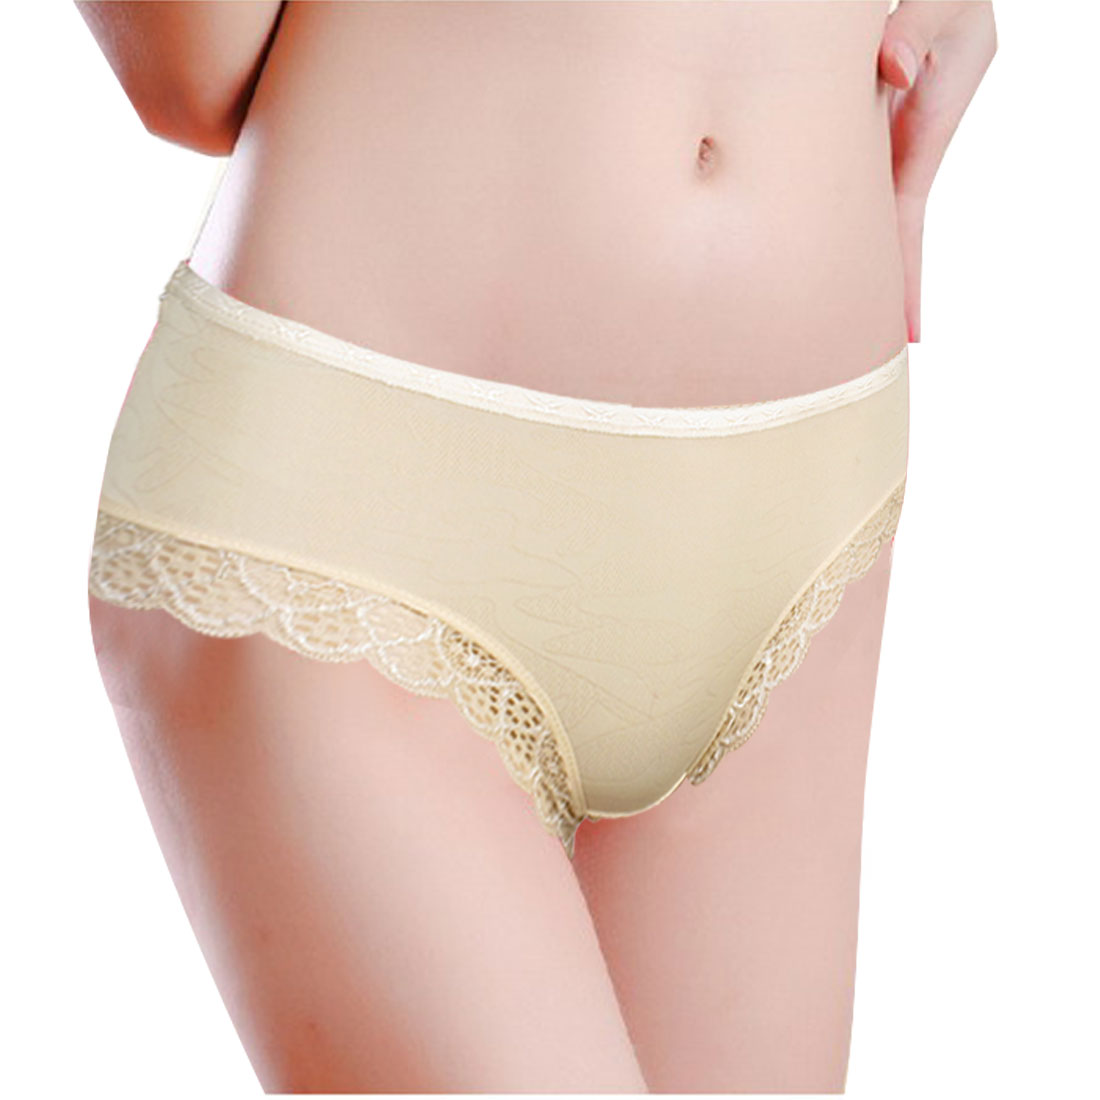 Beige Laced Cuff Hollow Out Hip Underpants Briefs XS for Ladies